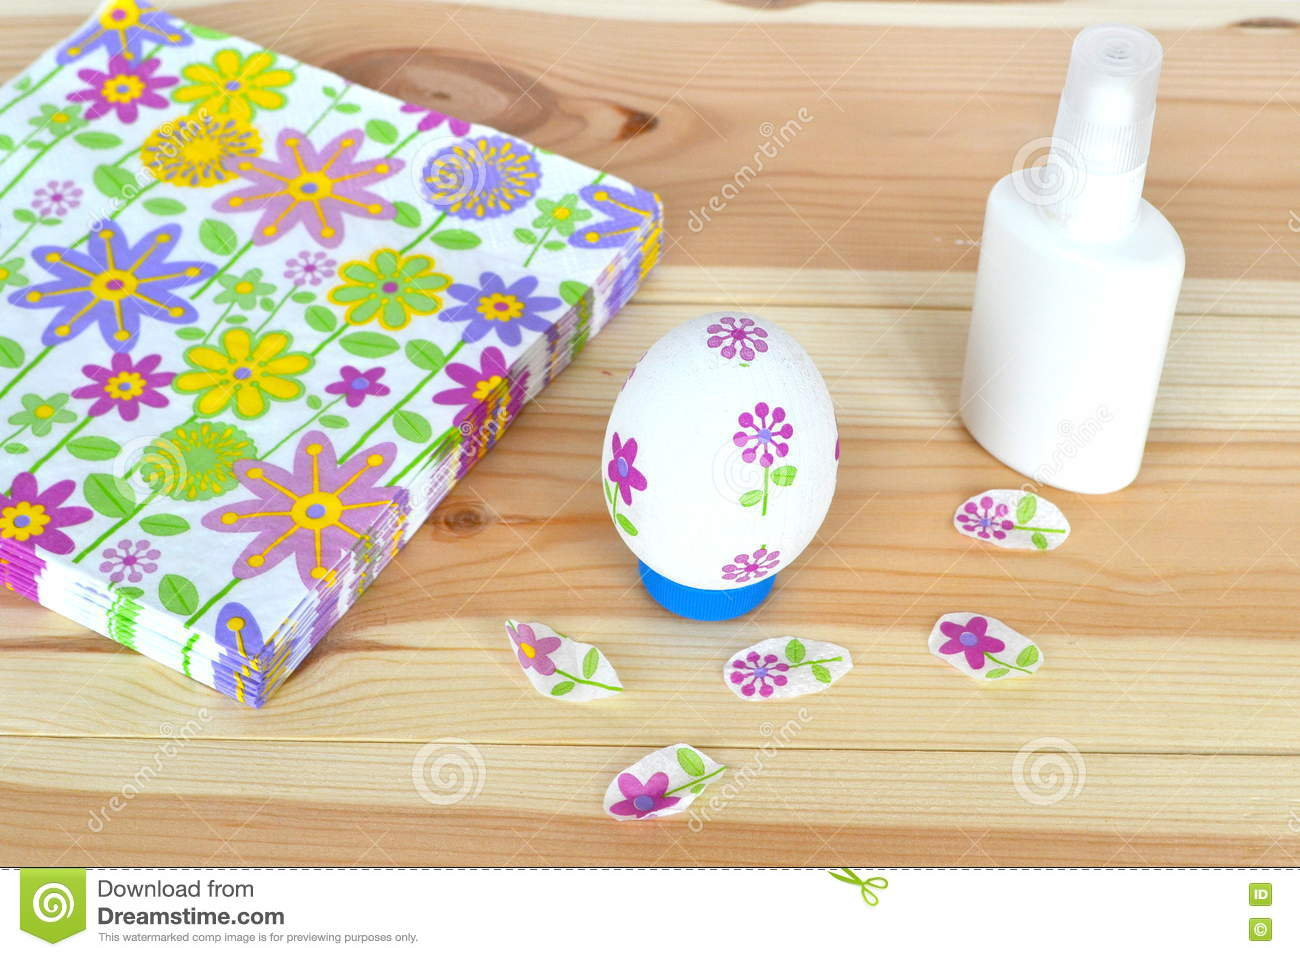 Decoupage Easter Egg, Glue, Napkins With A Floral Pattern On